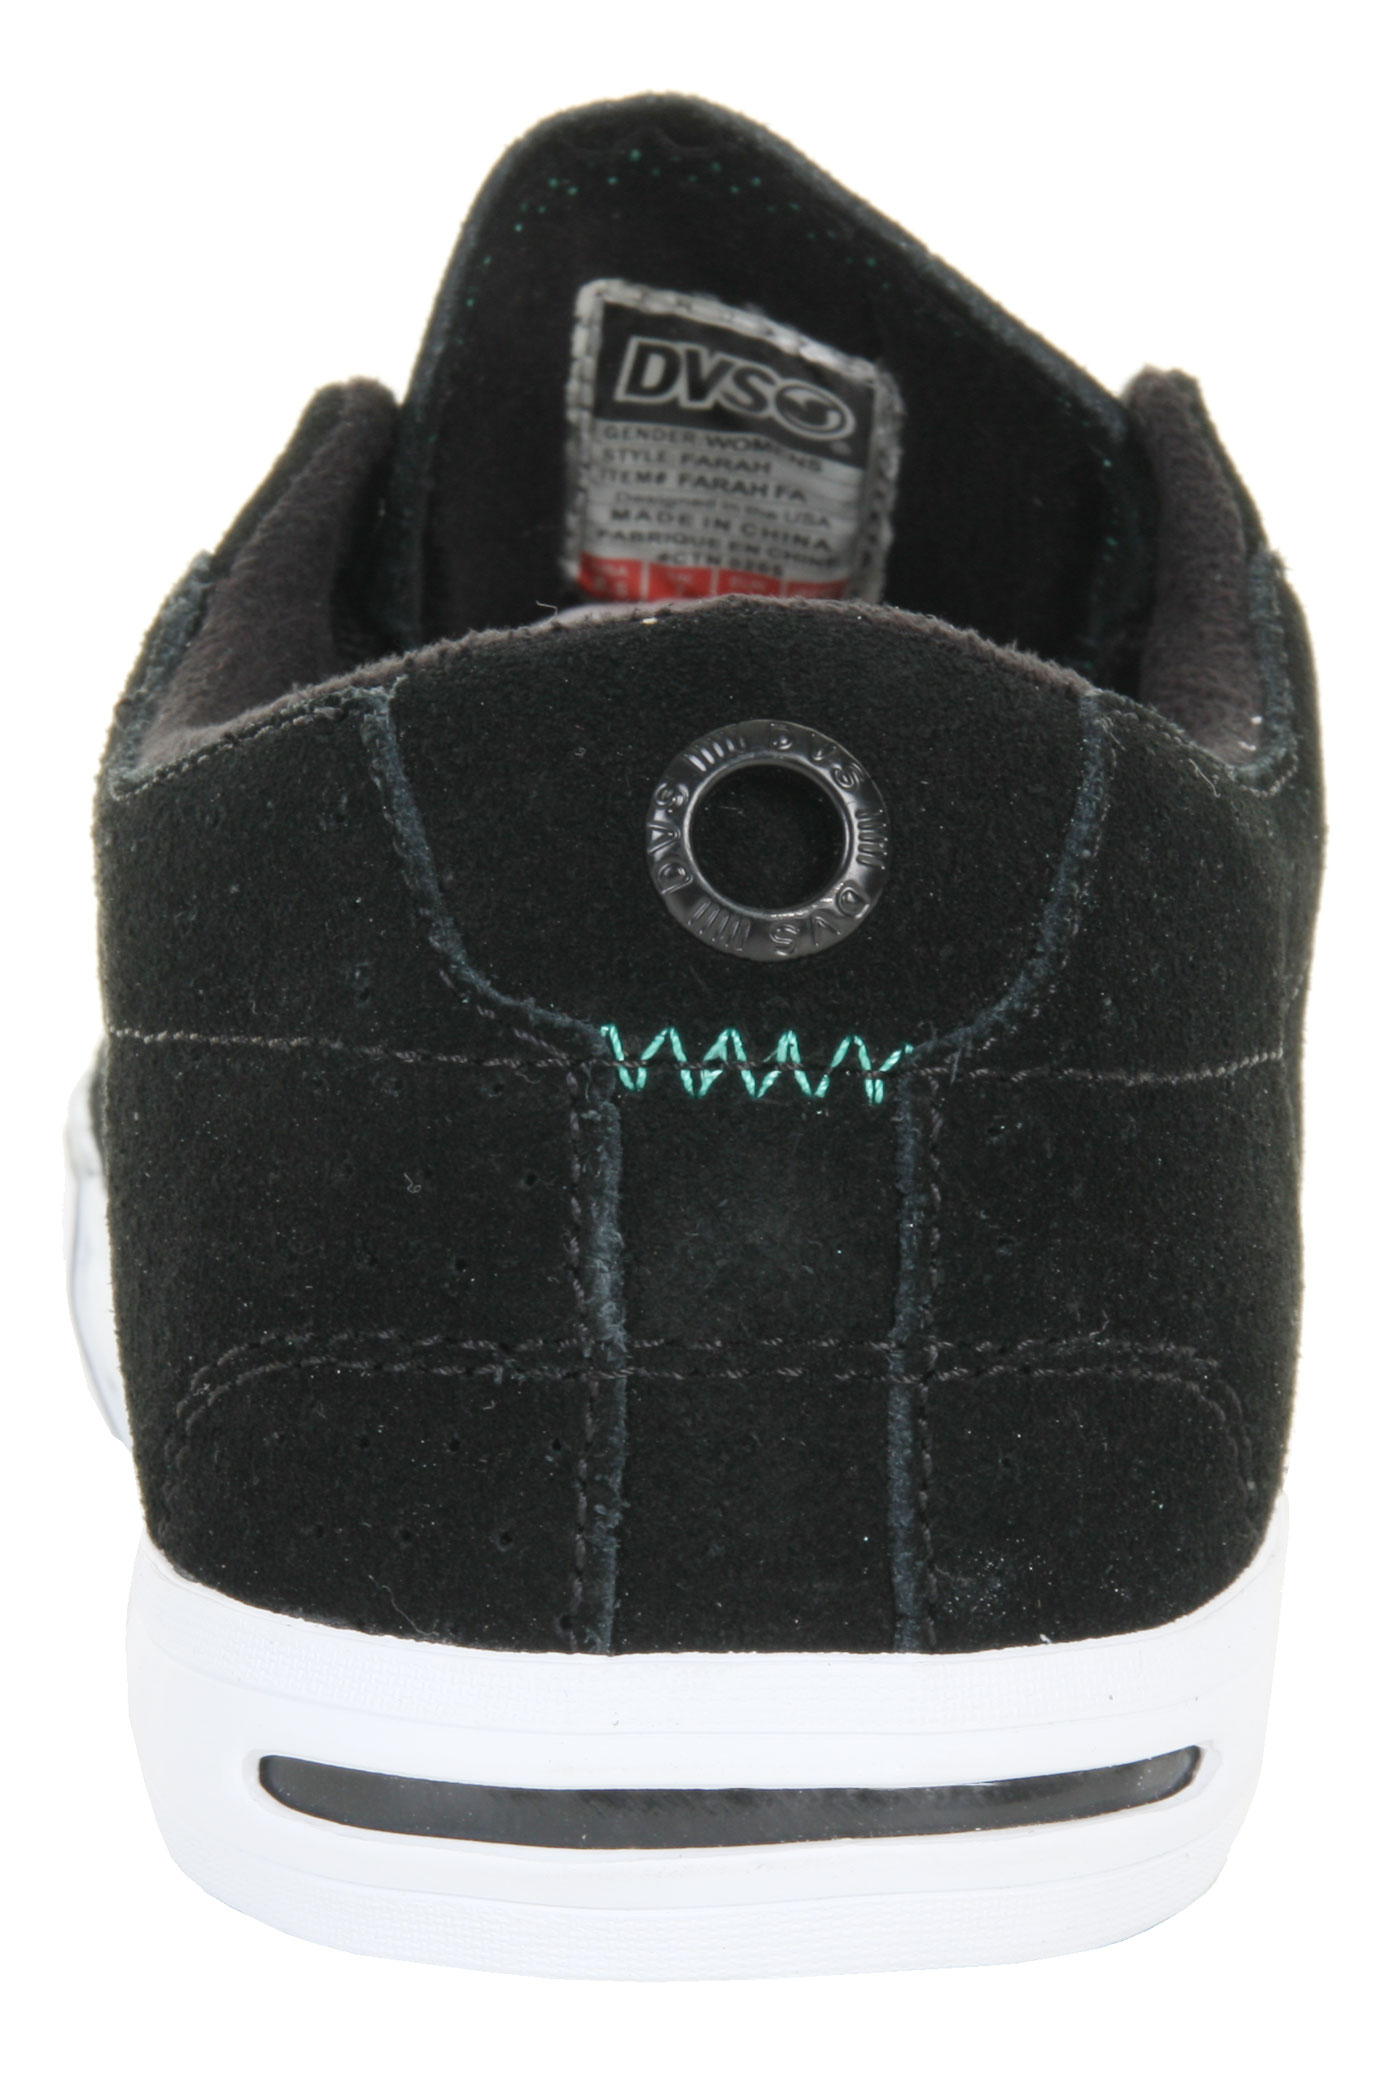 Page Shoes Skateboard shoes and Sneakers DVS Farah Suede Shoe women